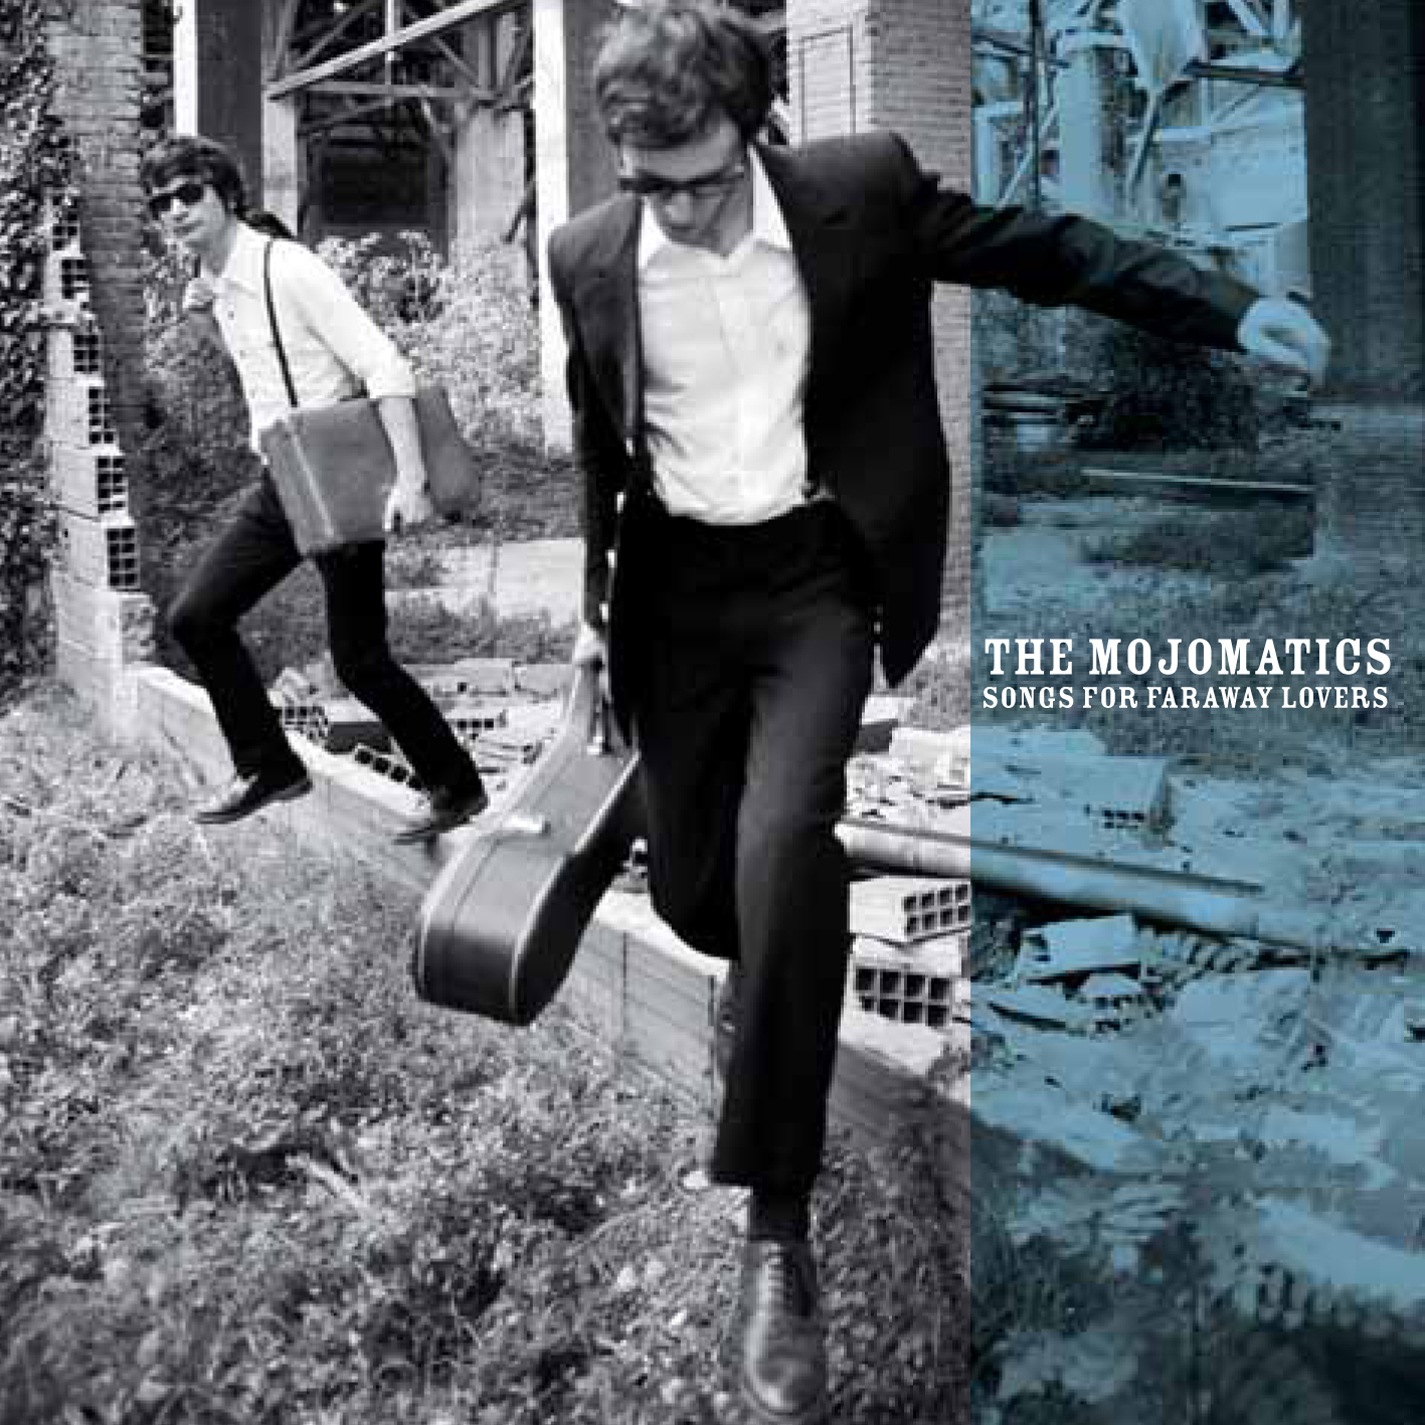 DV001 / The Mojomatics - Songs For Faraway Lovers